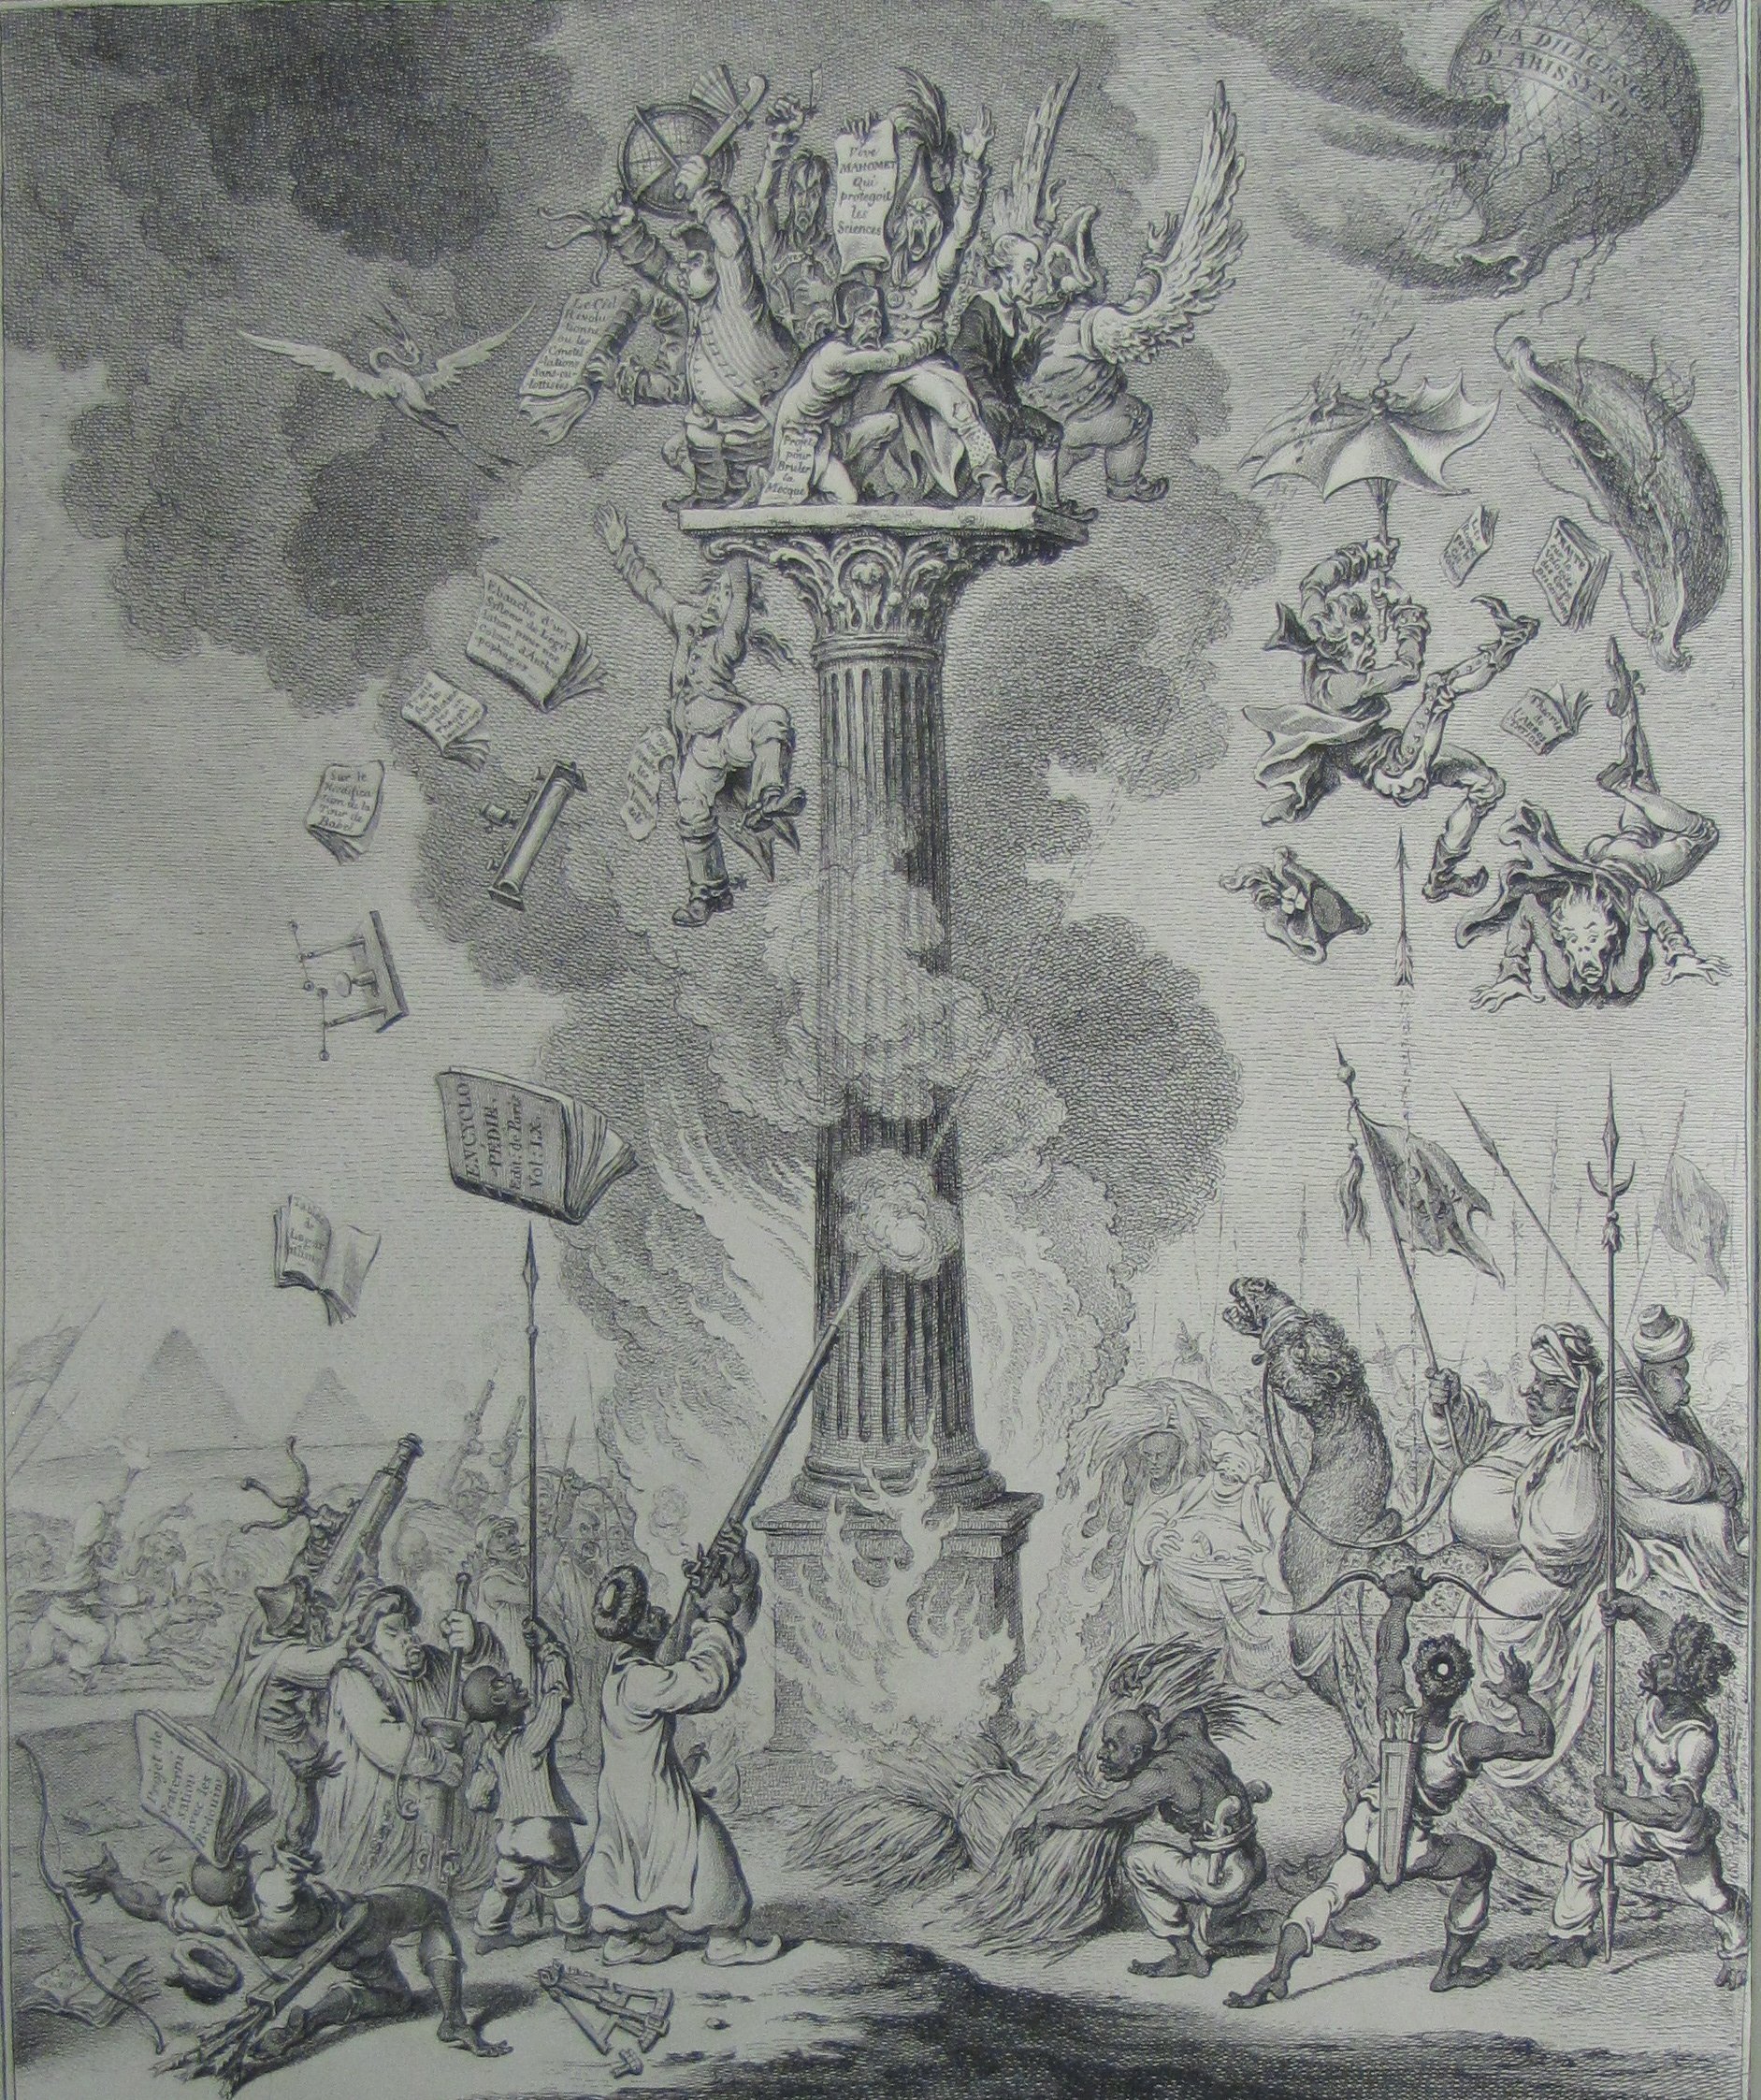 Image of a battle staged between those atop a pillar and those beneath them on the ground